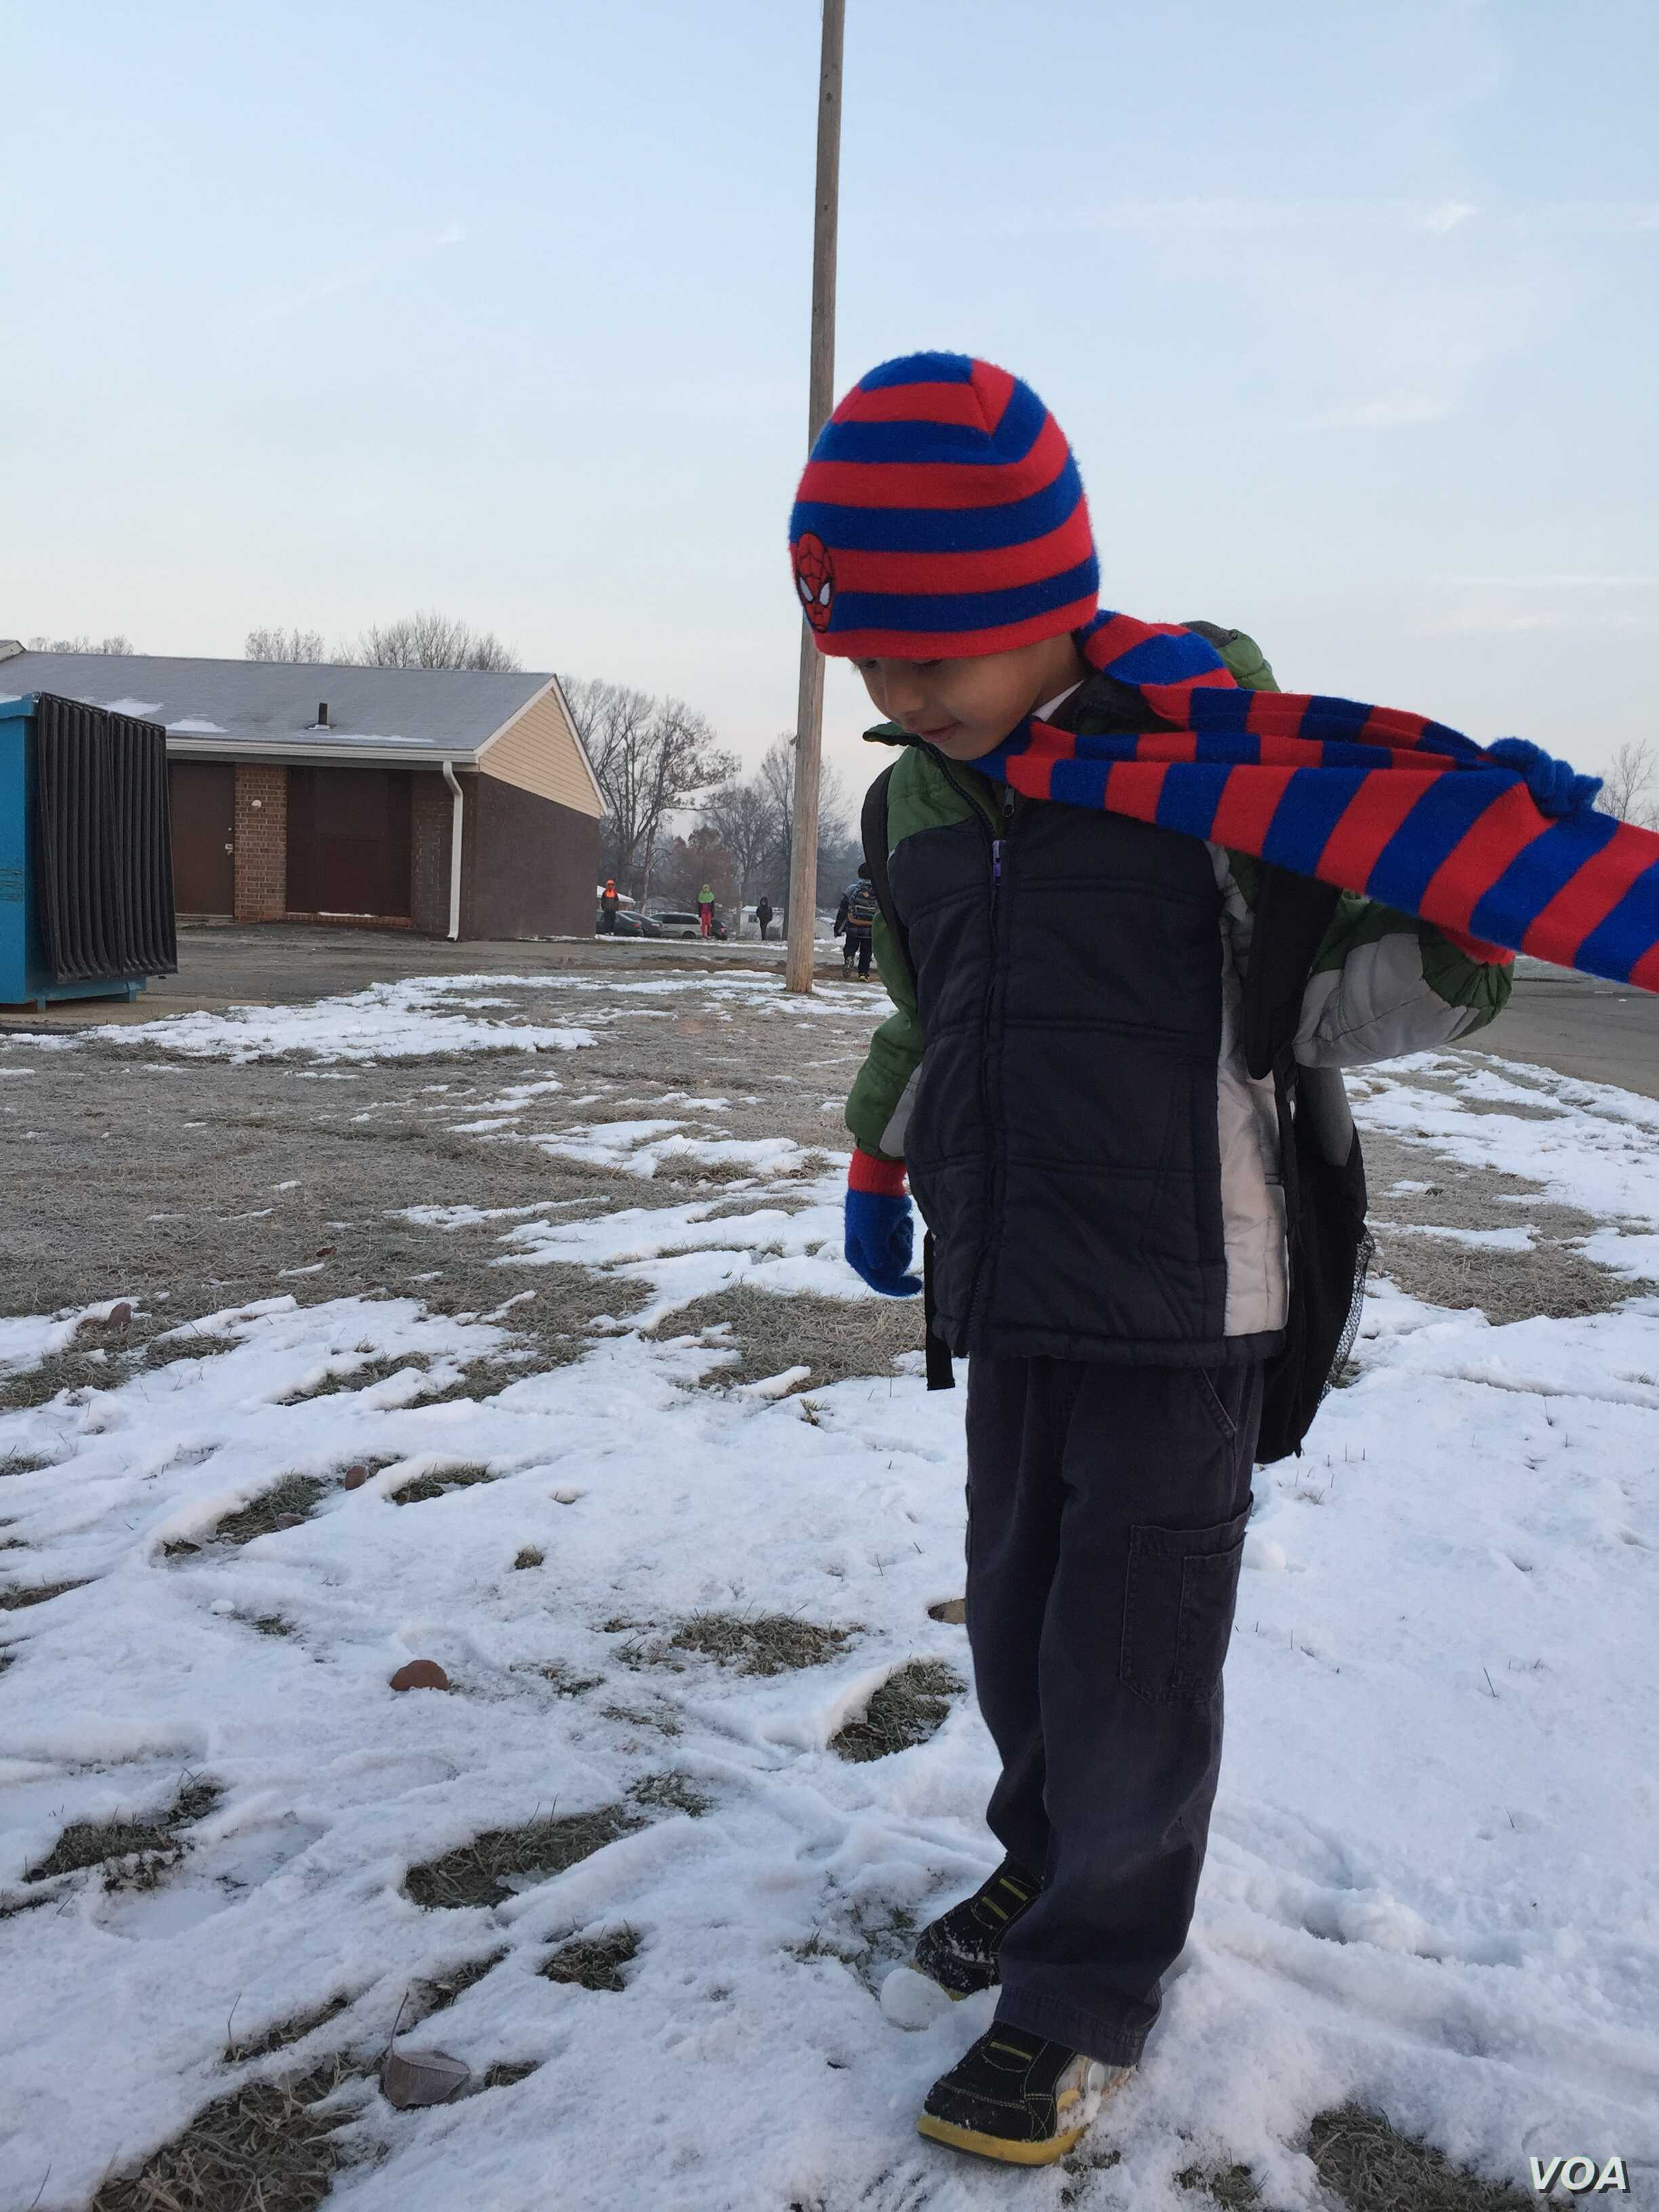 Bu Say Wah waits for his school bus to pick him up. The first-grader is learning English as well as his native language at his Fort Wayne school. His teachers say he is a star pupil and respectful. (C. Presutti/VOA)